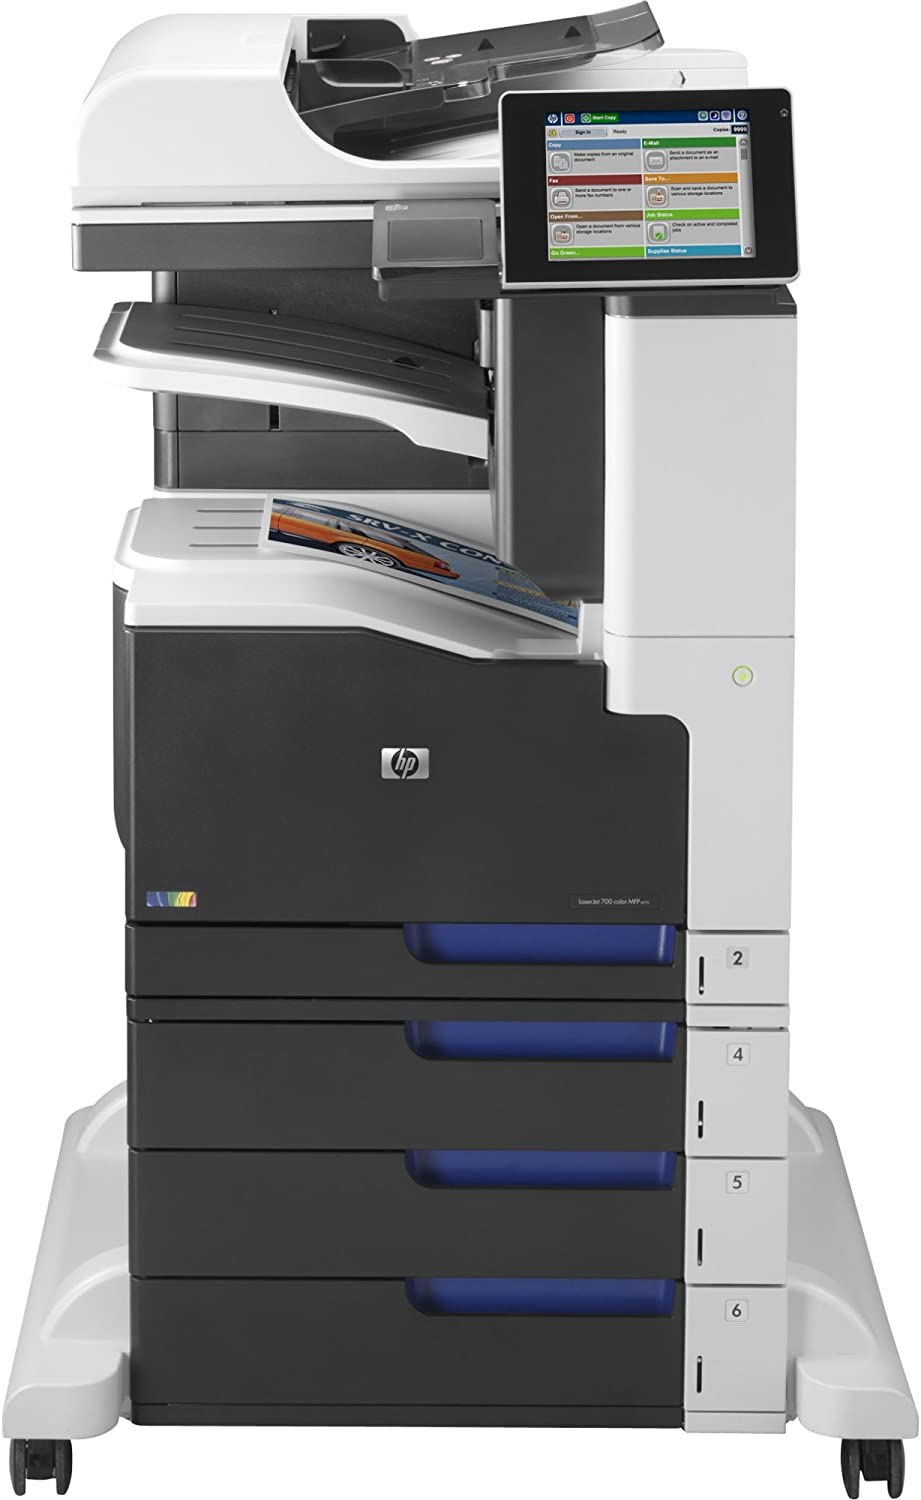 HP CC524A Laserjet Enterprise 700 Color MFP M775z Laser Printer, Copy/Fax/Print/Scan